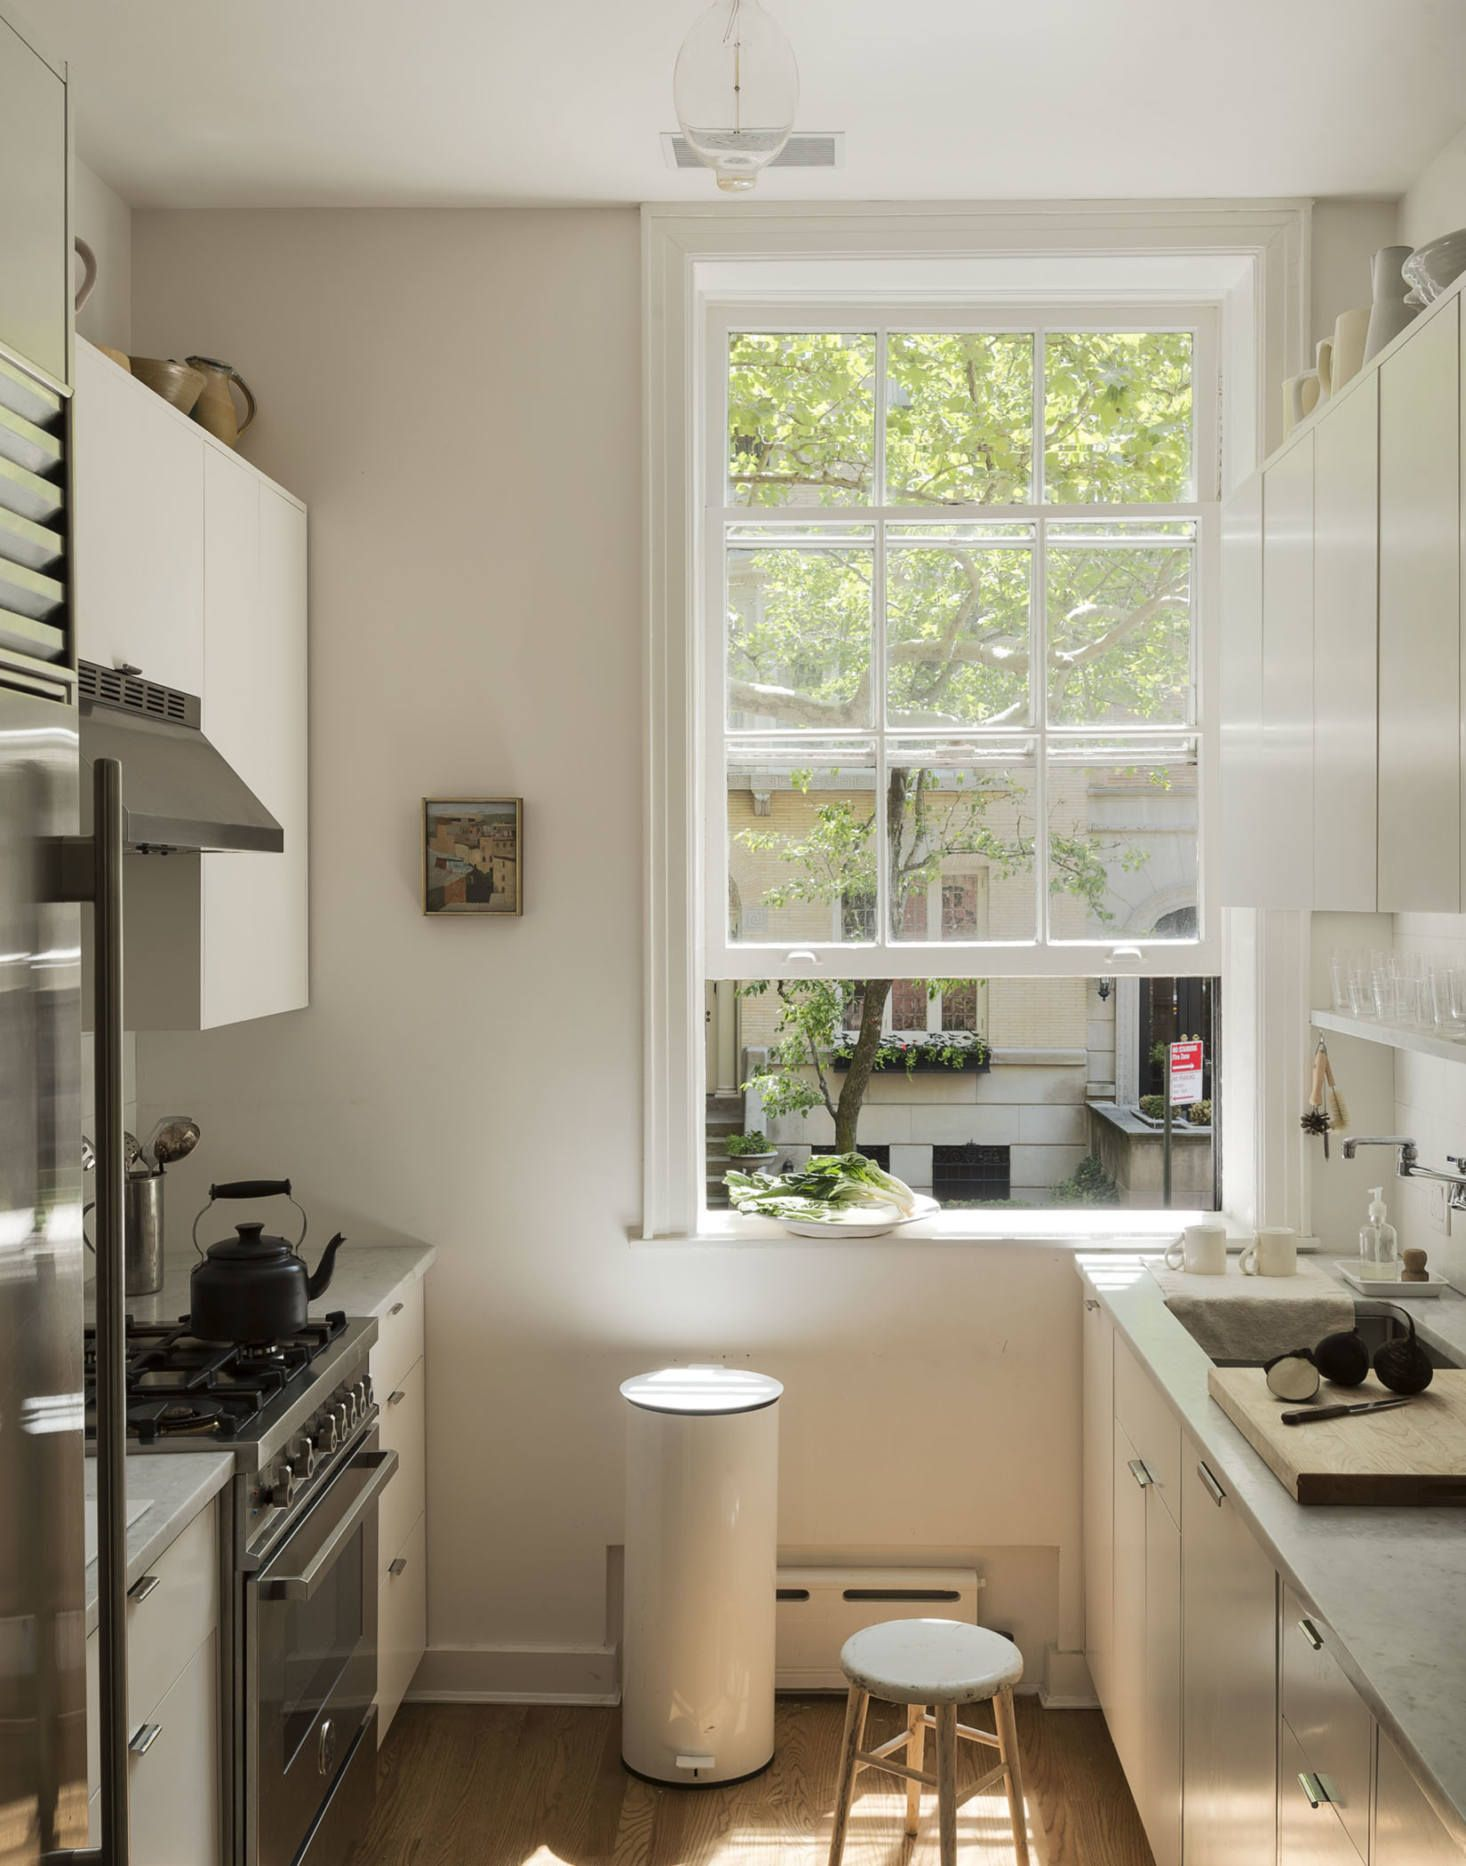 Before After A Remodelista S Refreshed Parlor Floor Flat In Brooklyn Heights Ny Remodelista In 2020 Parlor Floor Galley Kitchen Home Decor Kitchen